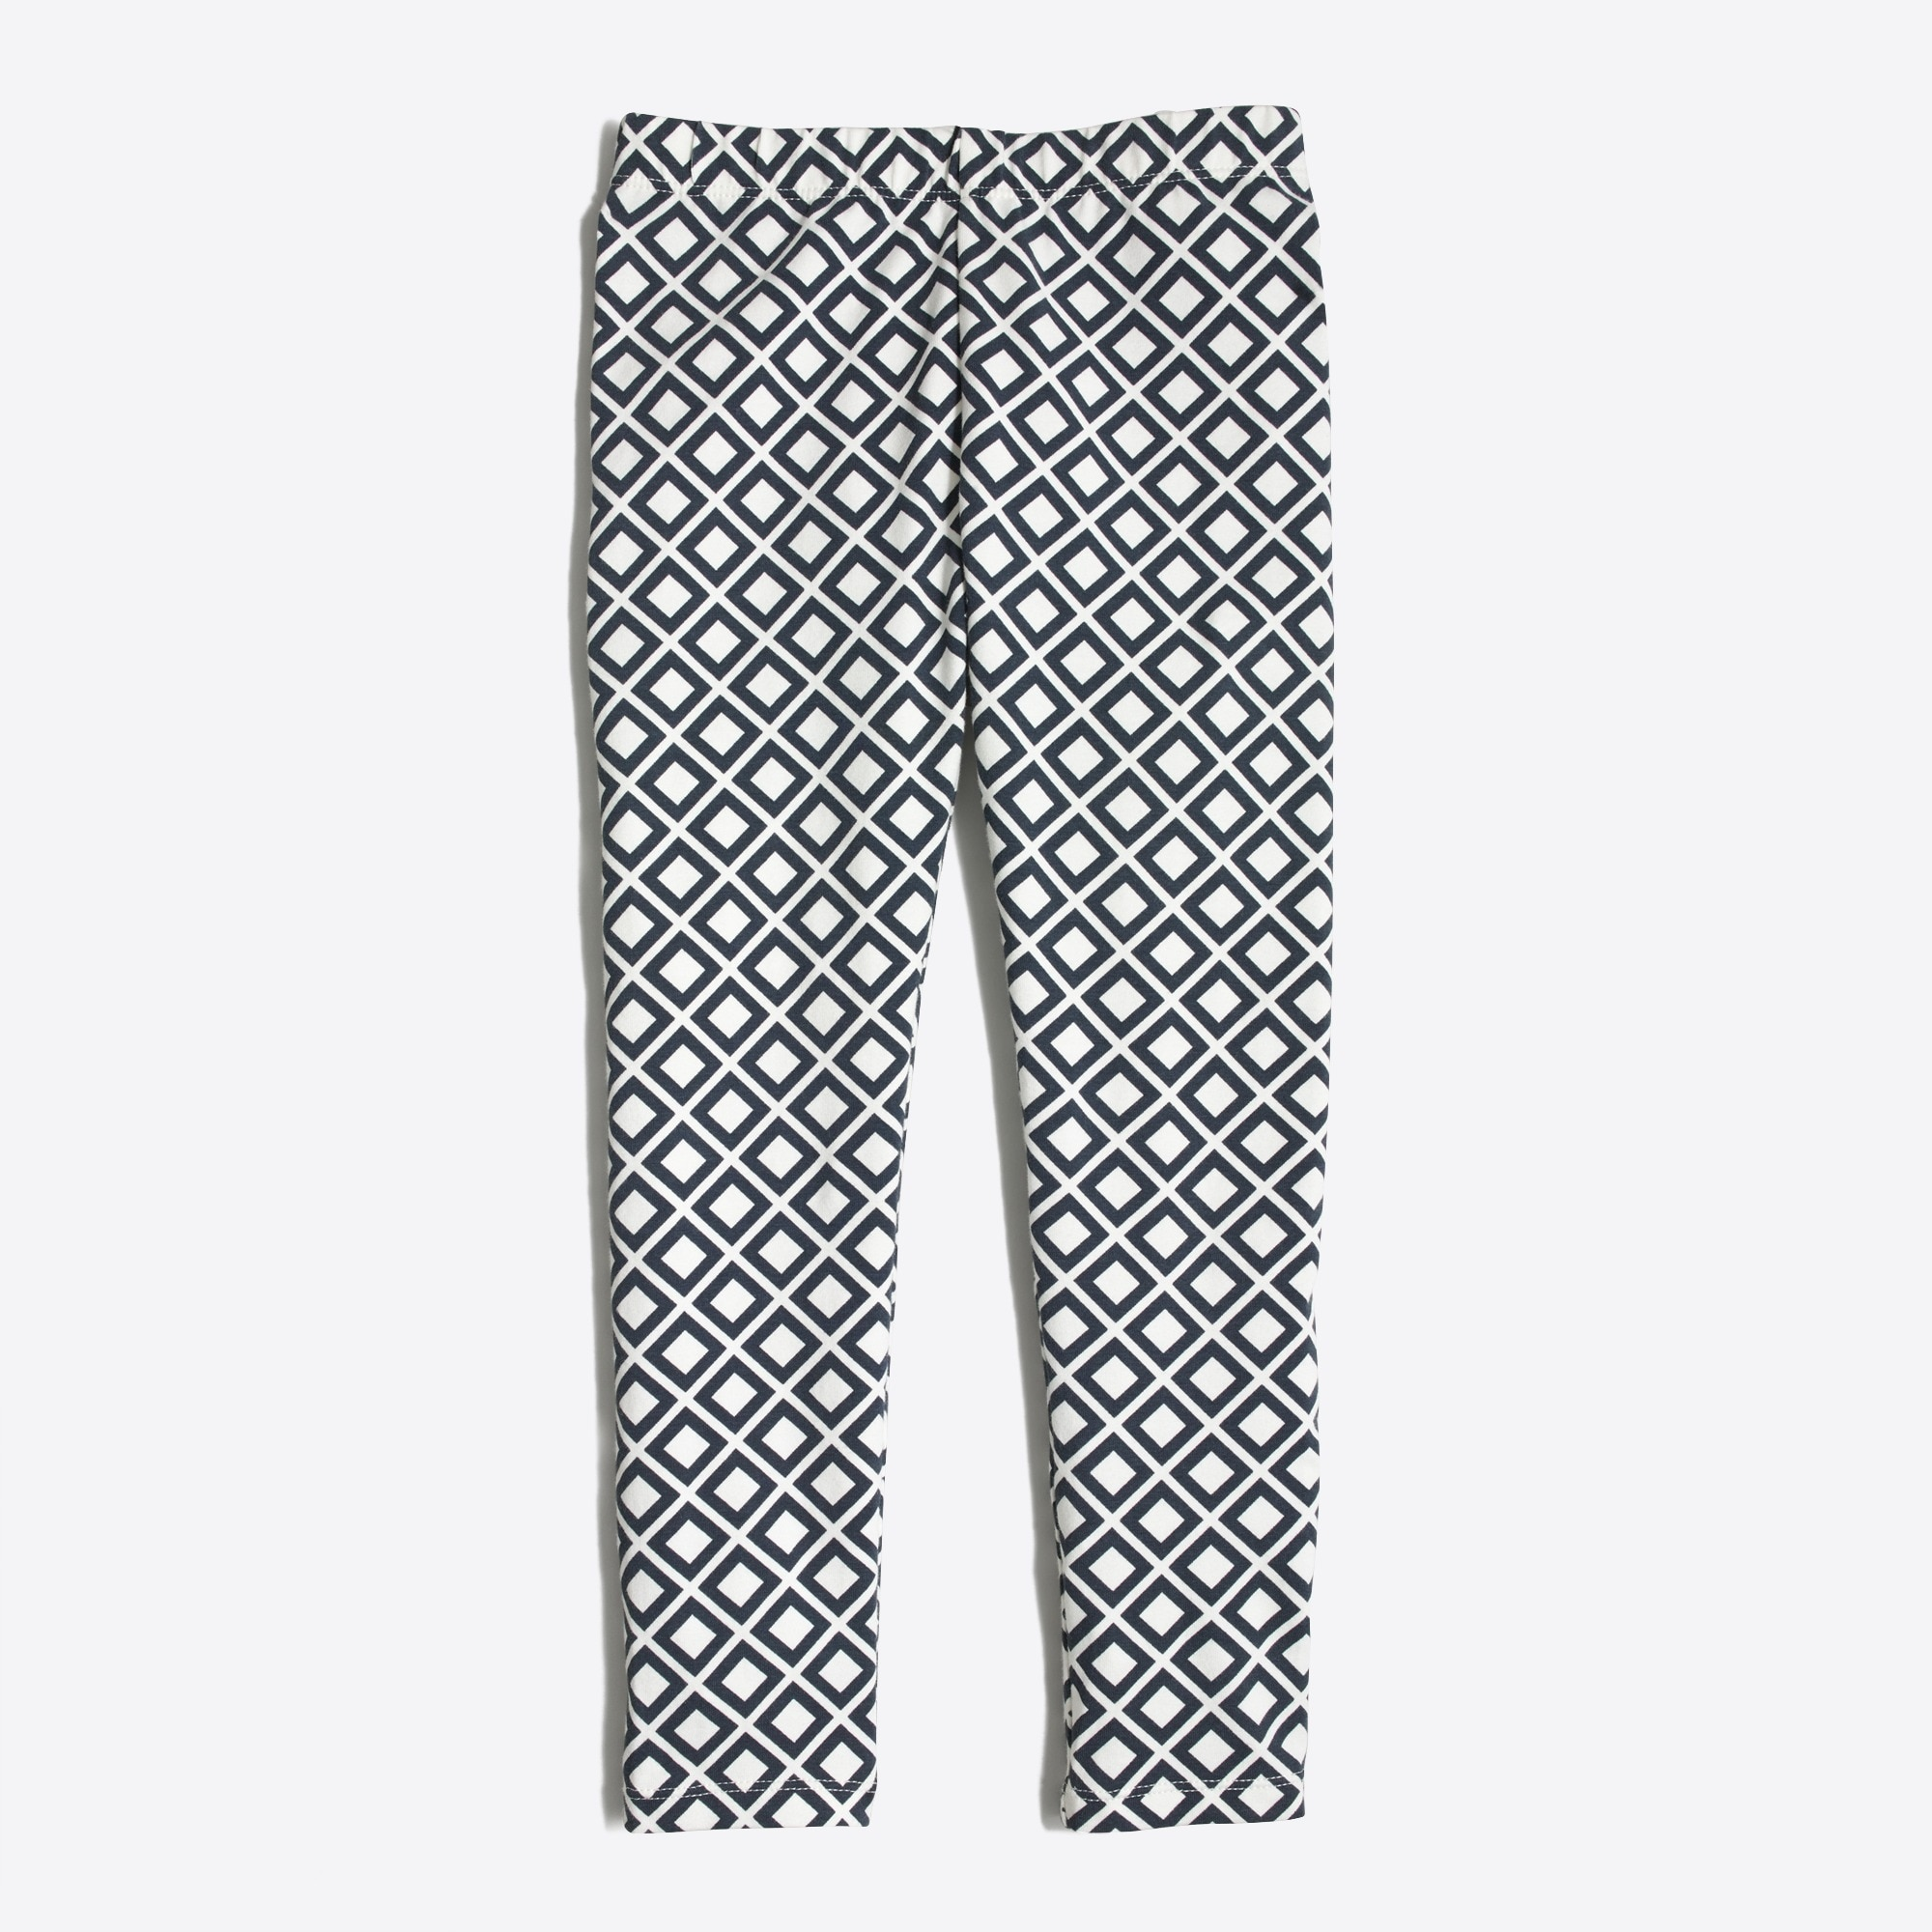 girls' leggings in diamond : factorygirls full length